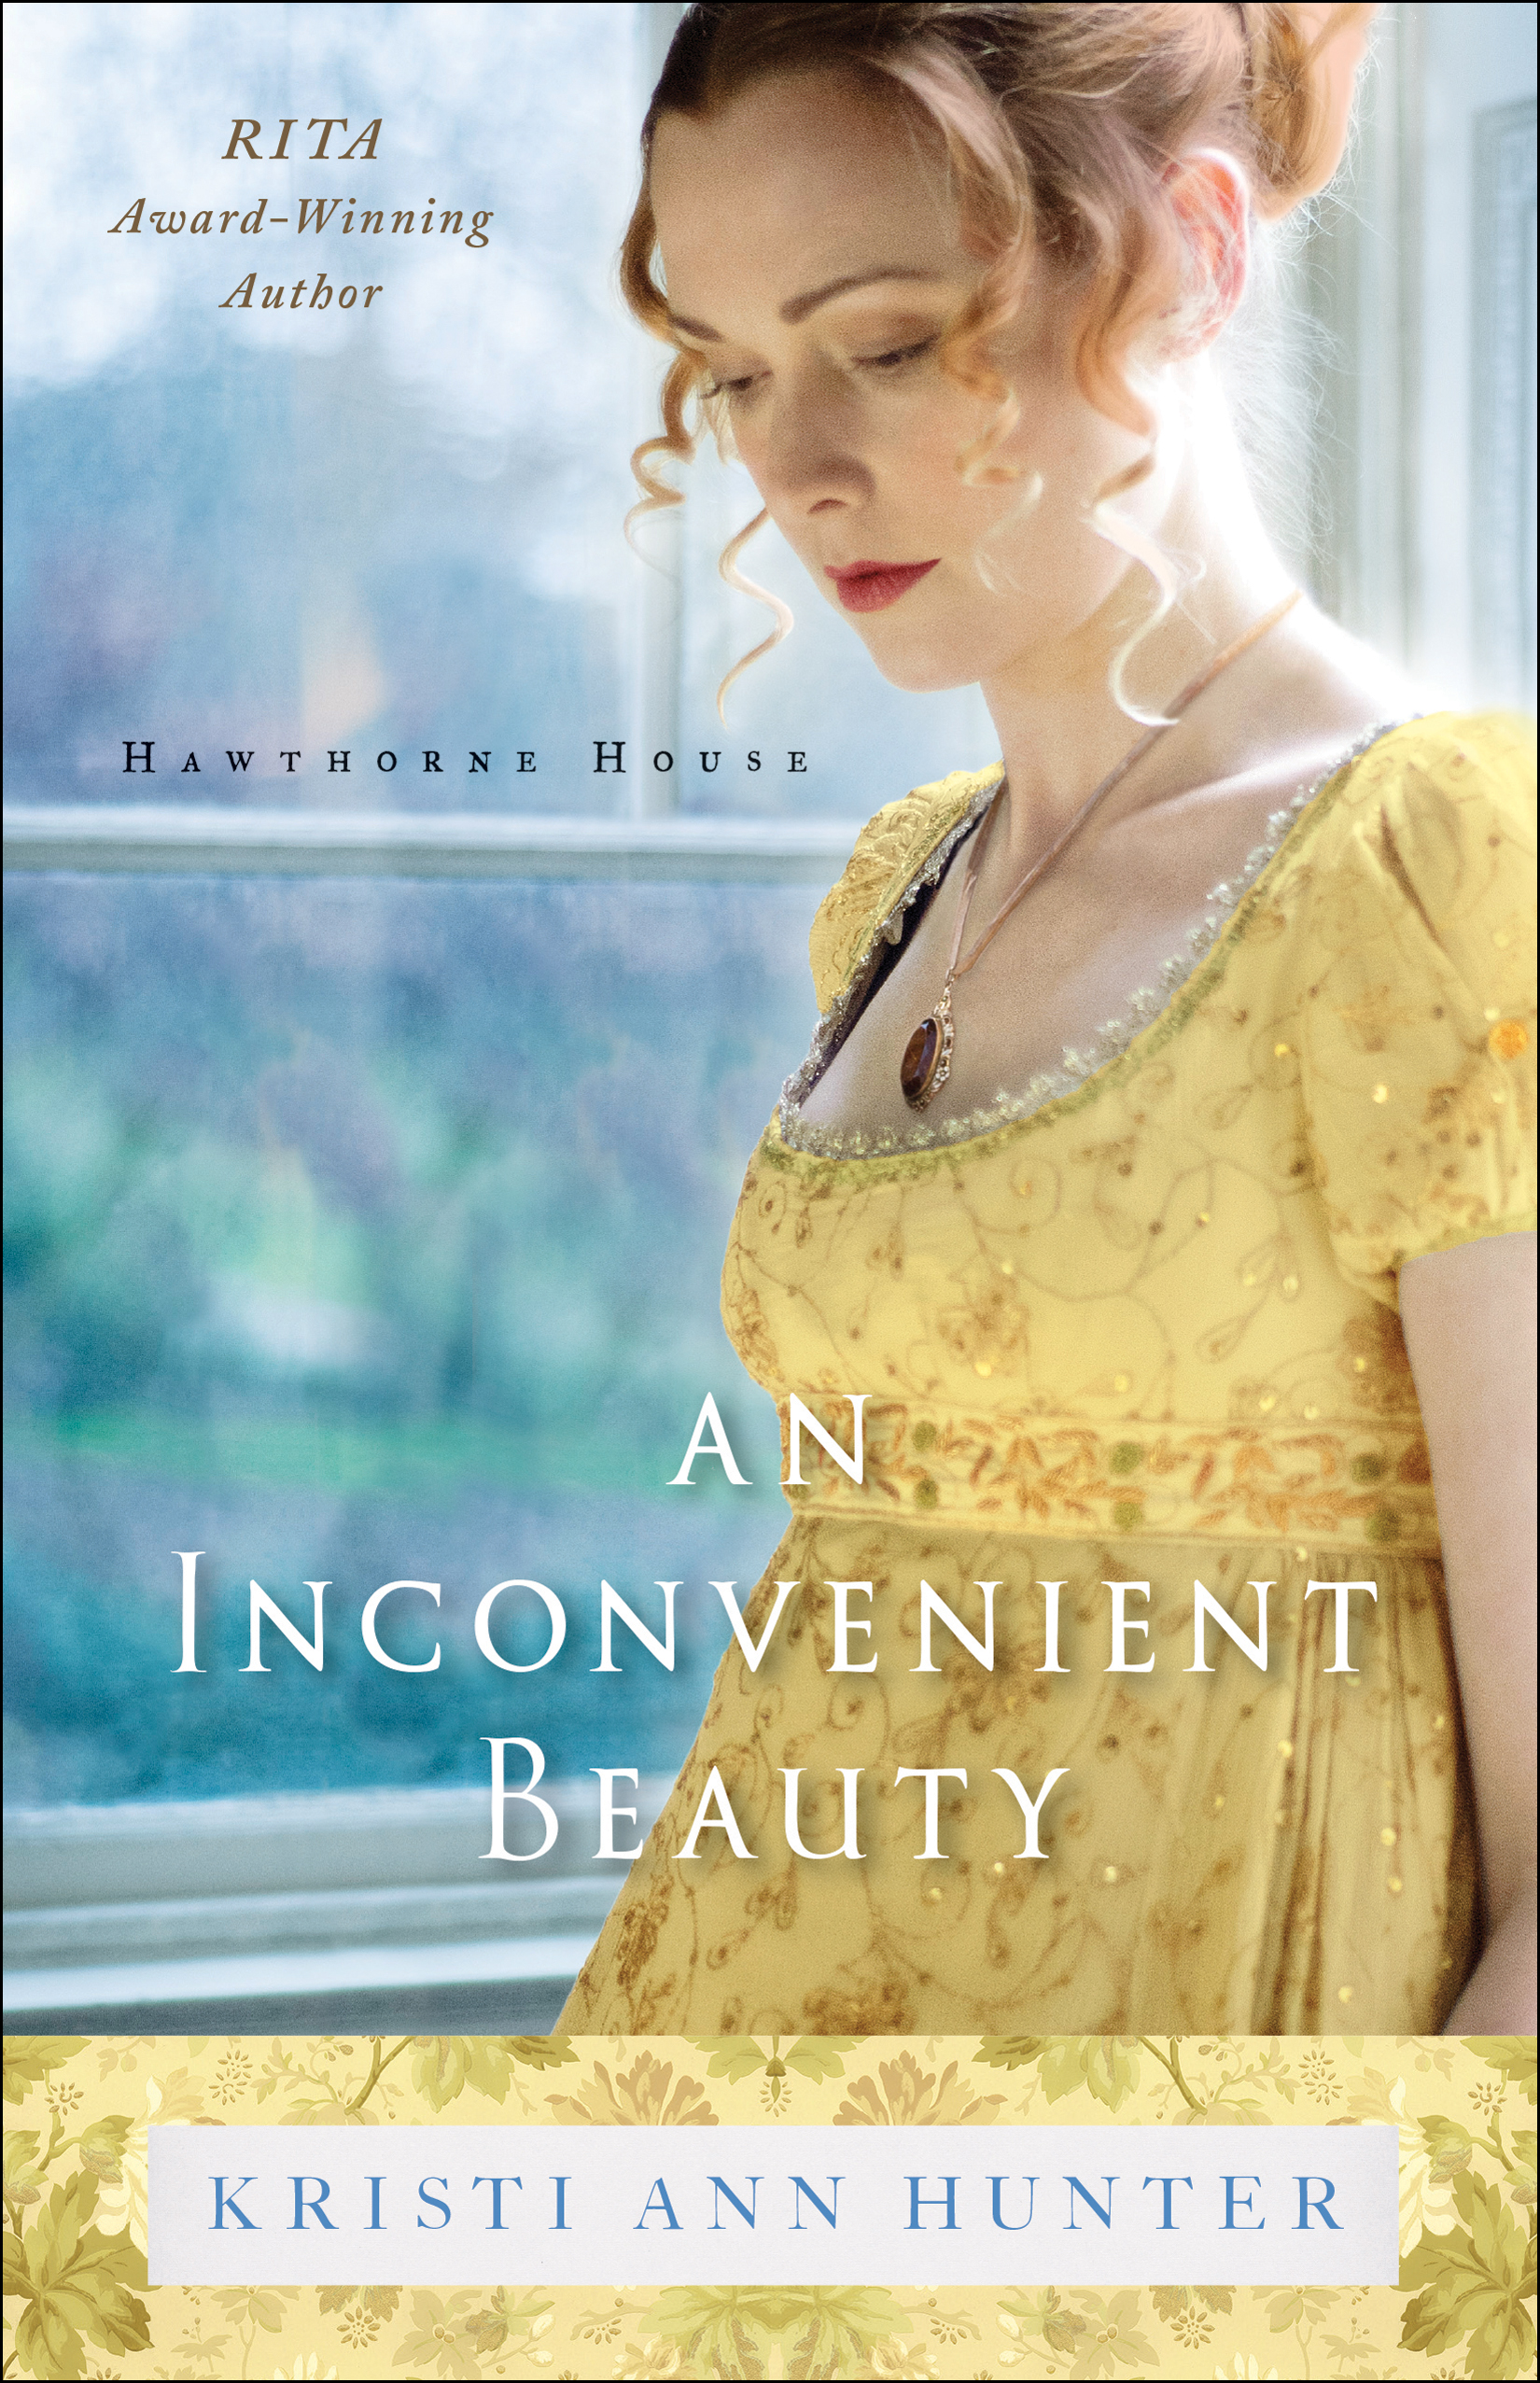 Book review of An Inconvenient Beauty by Kristi Ann Hunter (Bethany House) by papertapepins